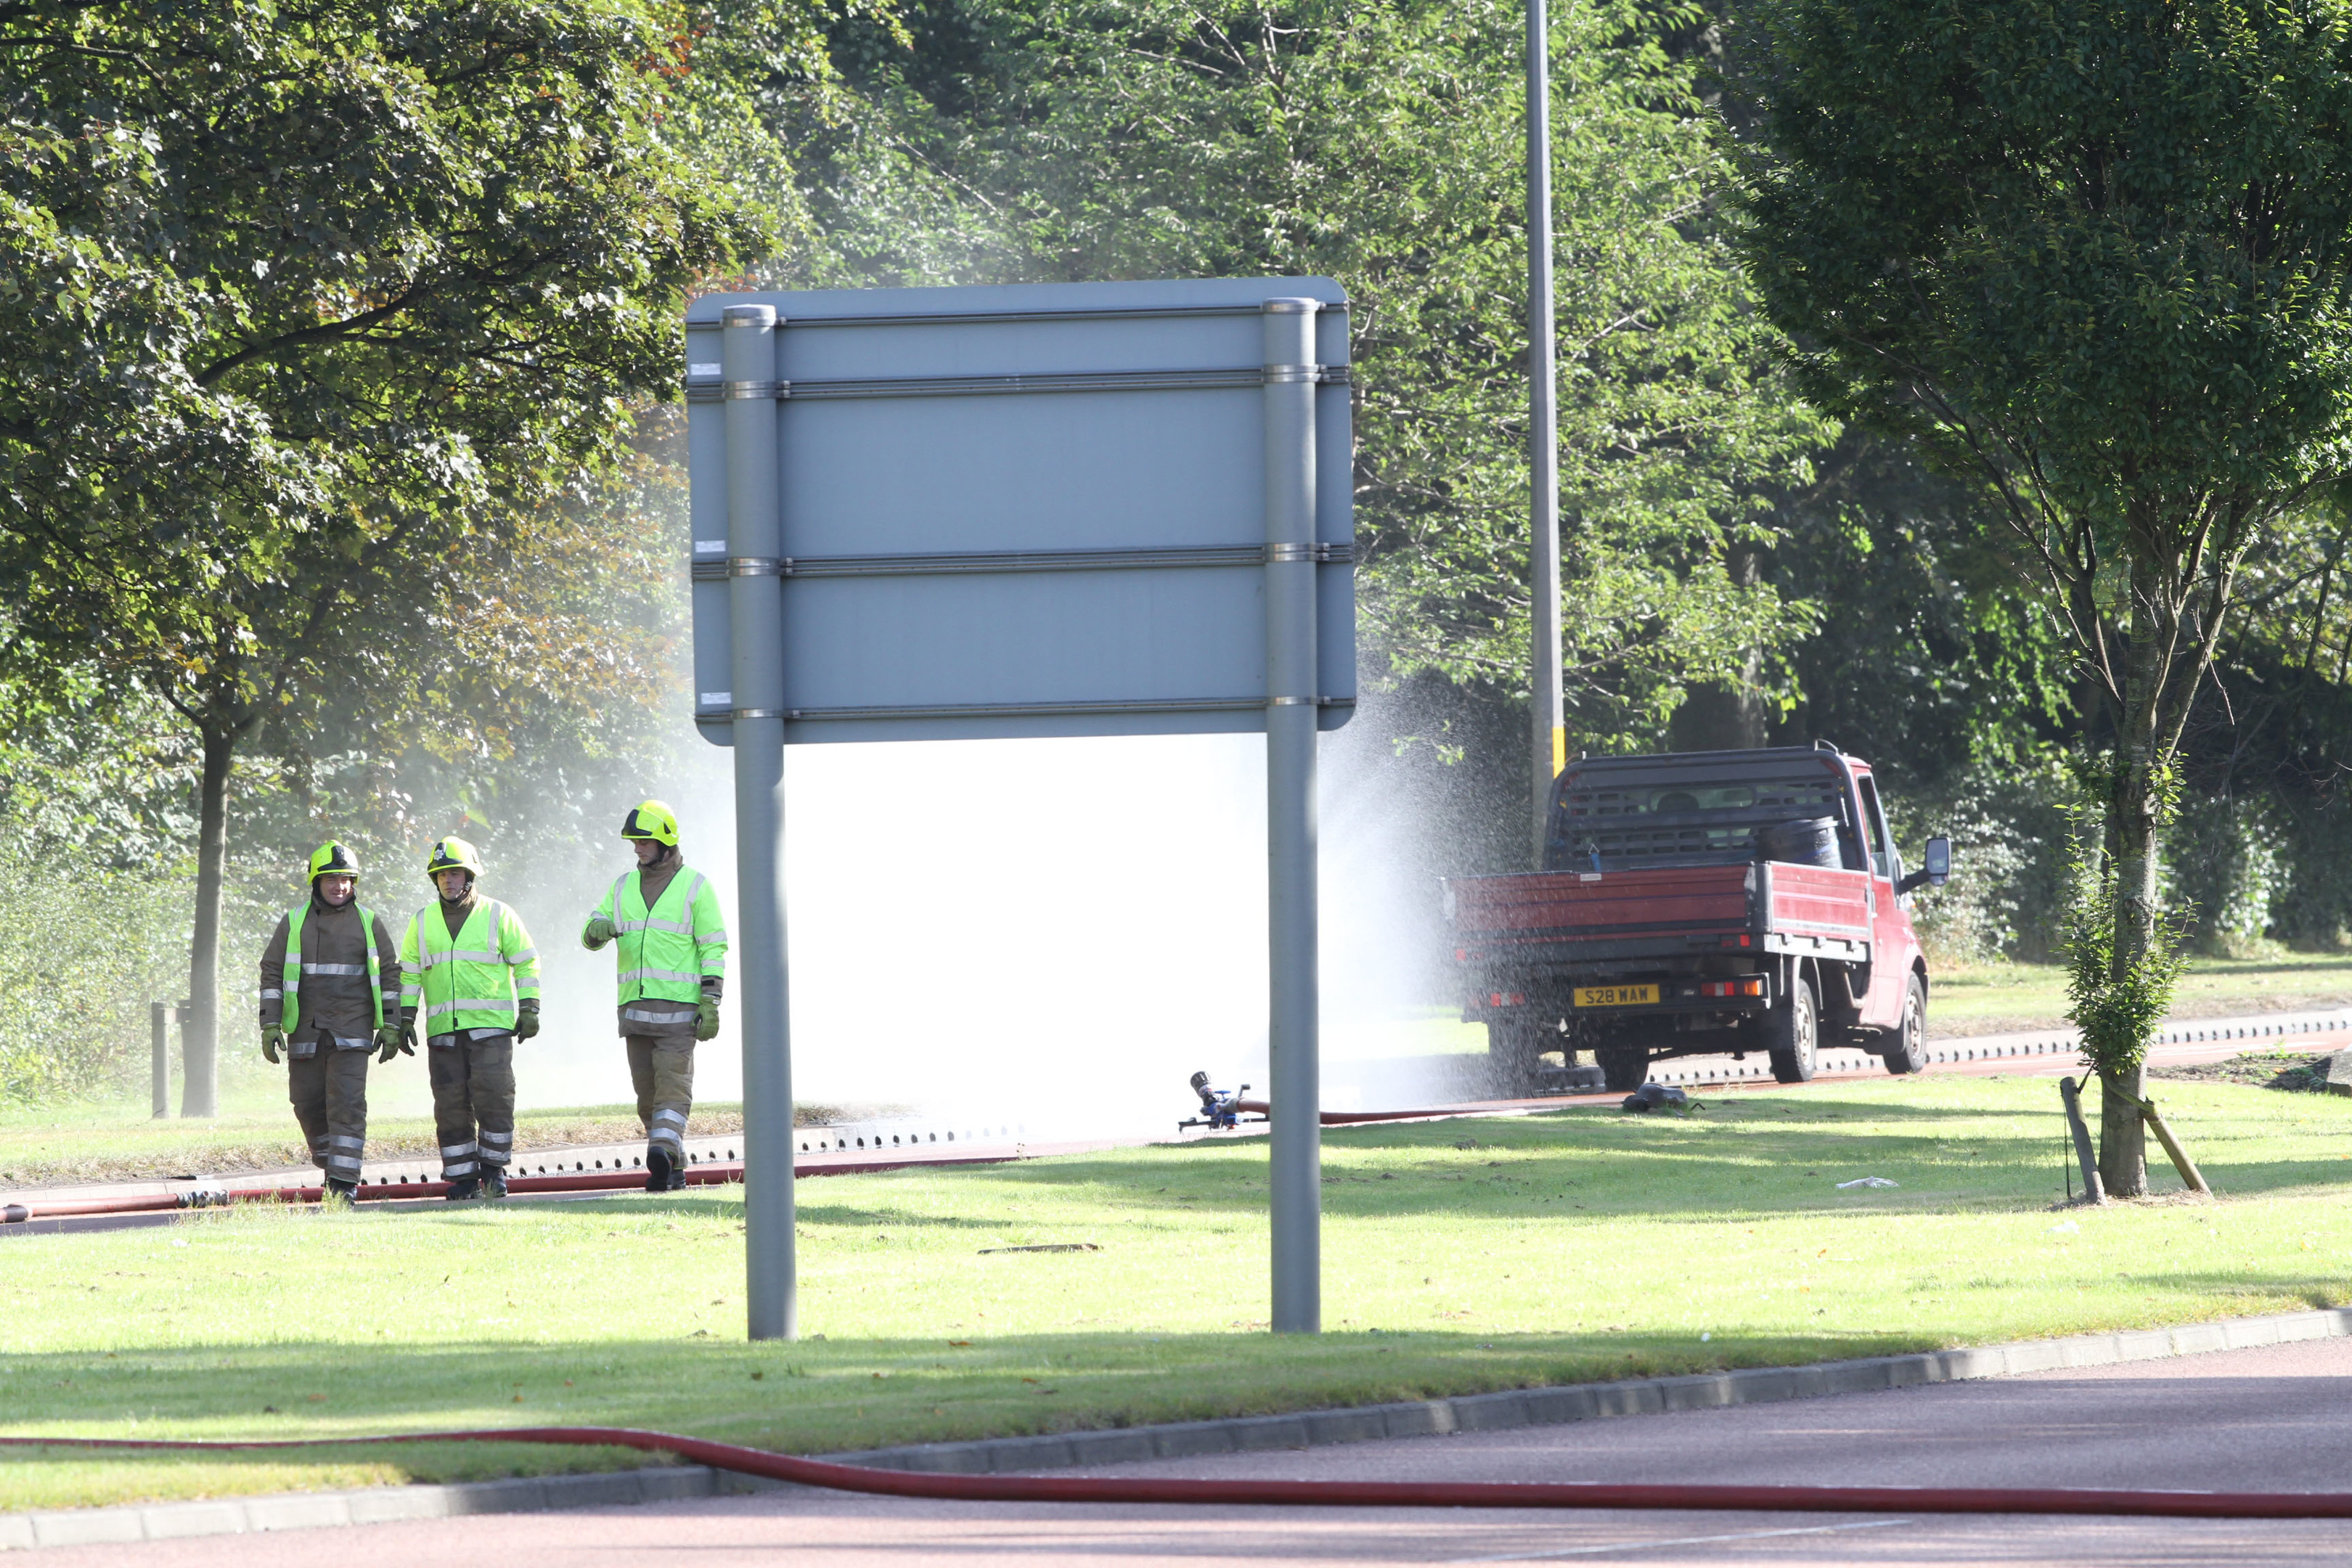 The scene of the incident. Firefighters used a hose to spray the leaking cylinder.